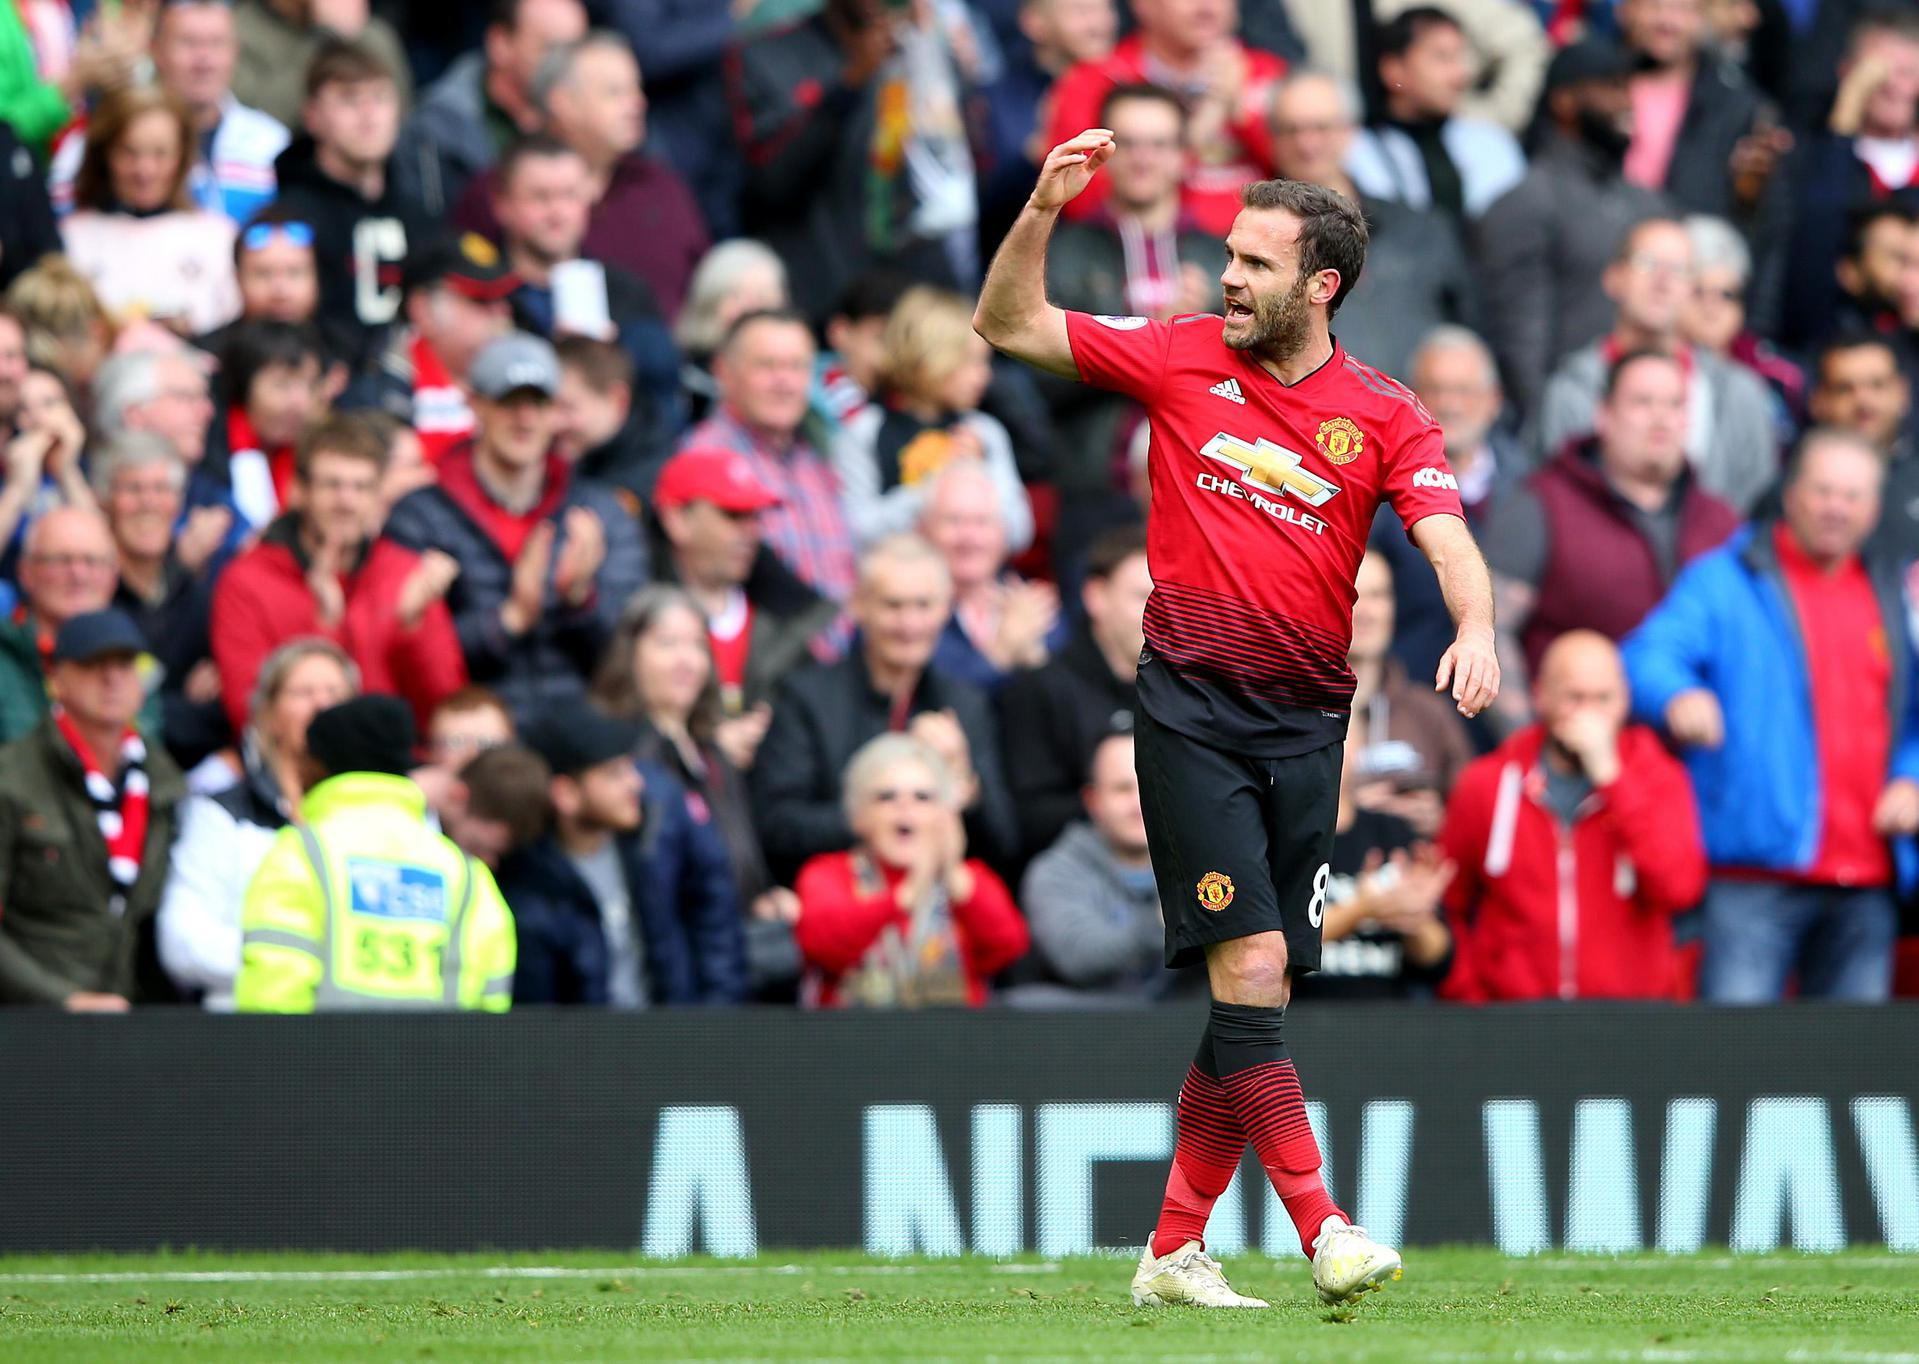 Juan Mata celebrates his goal against Chelsea.